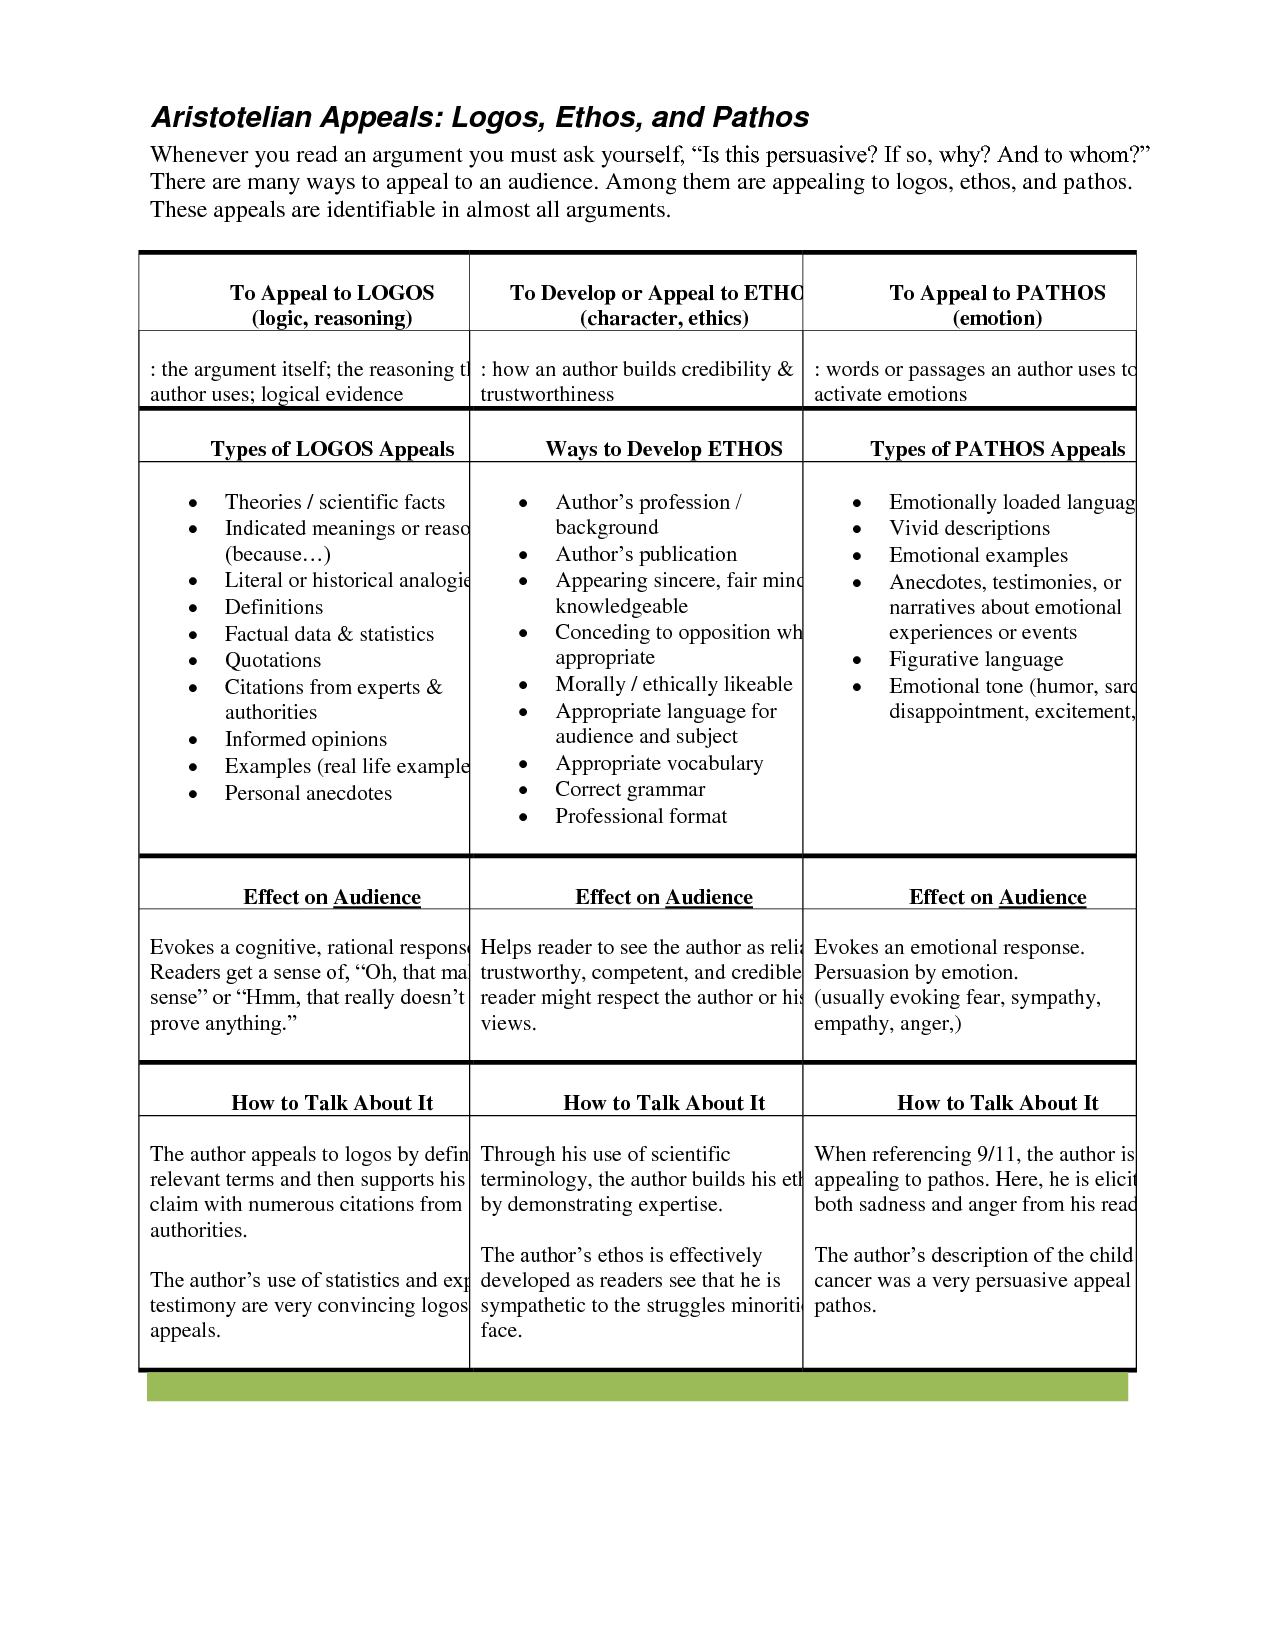 Worksheets Ethos Logos Pathos Worksheet scope of work template ethospathoslogos pinterest school template